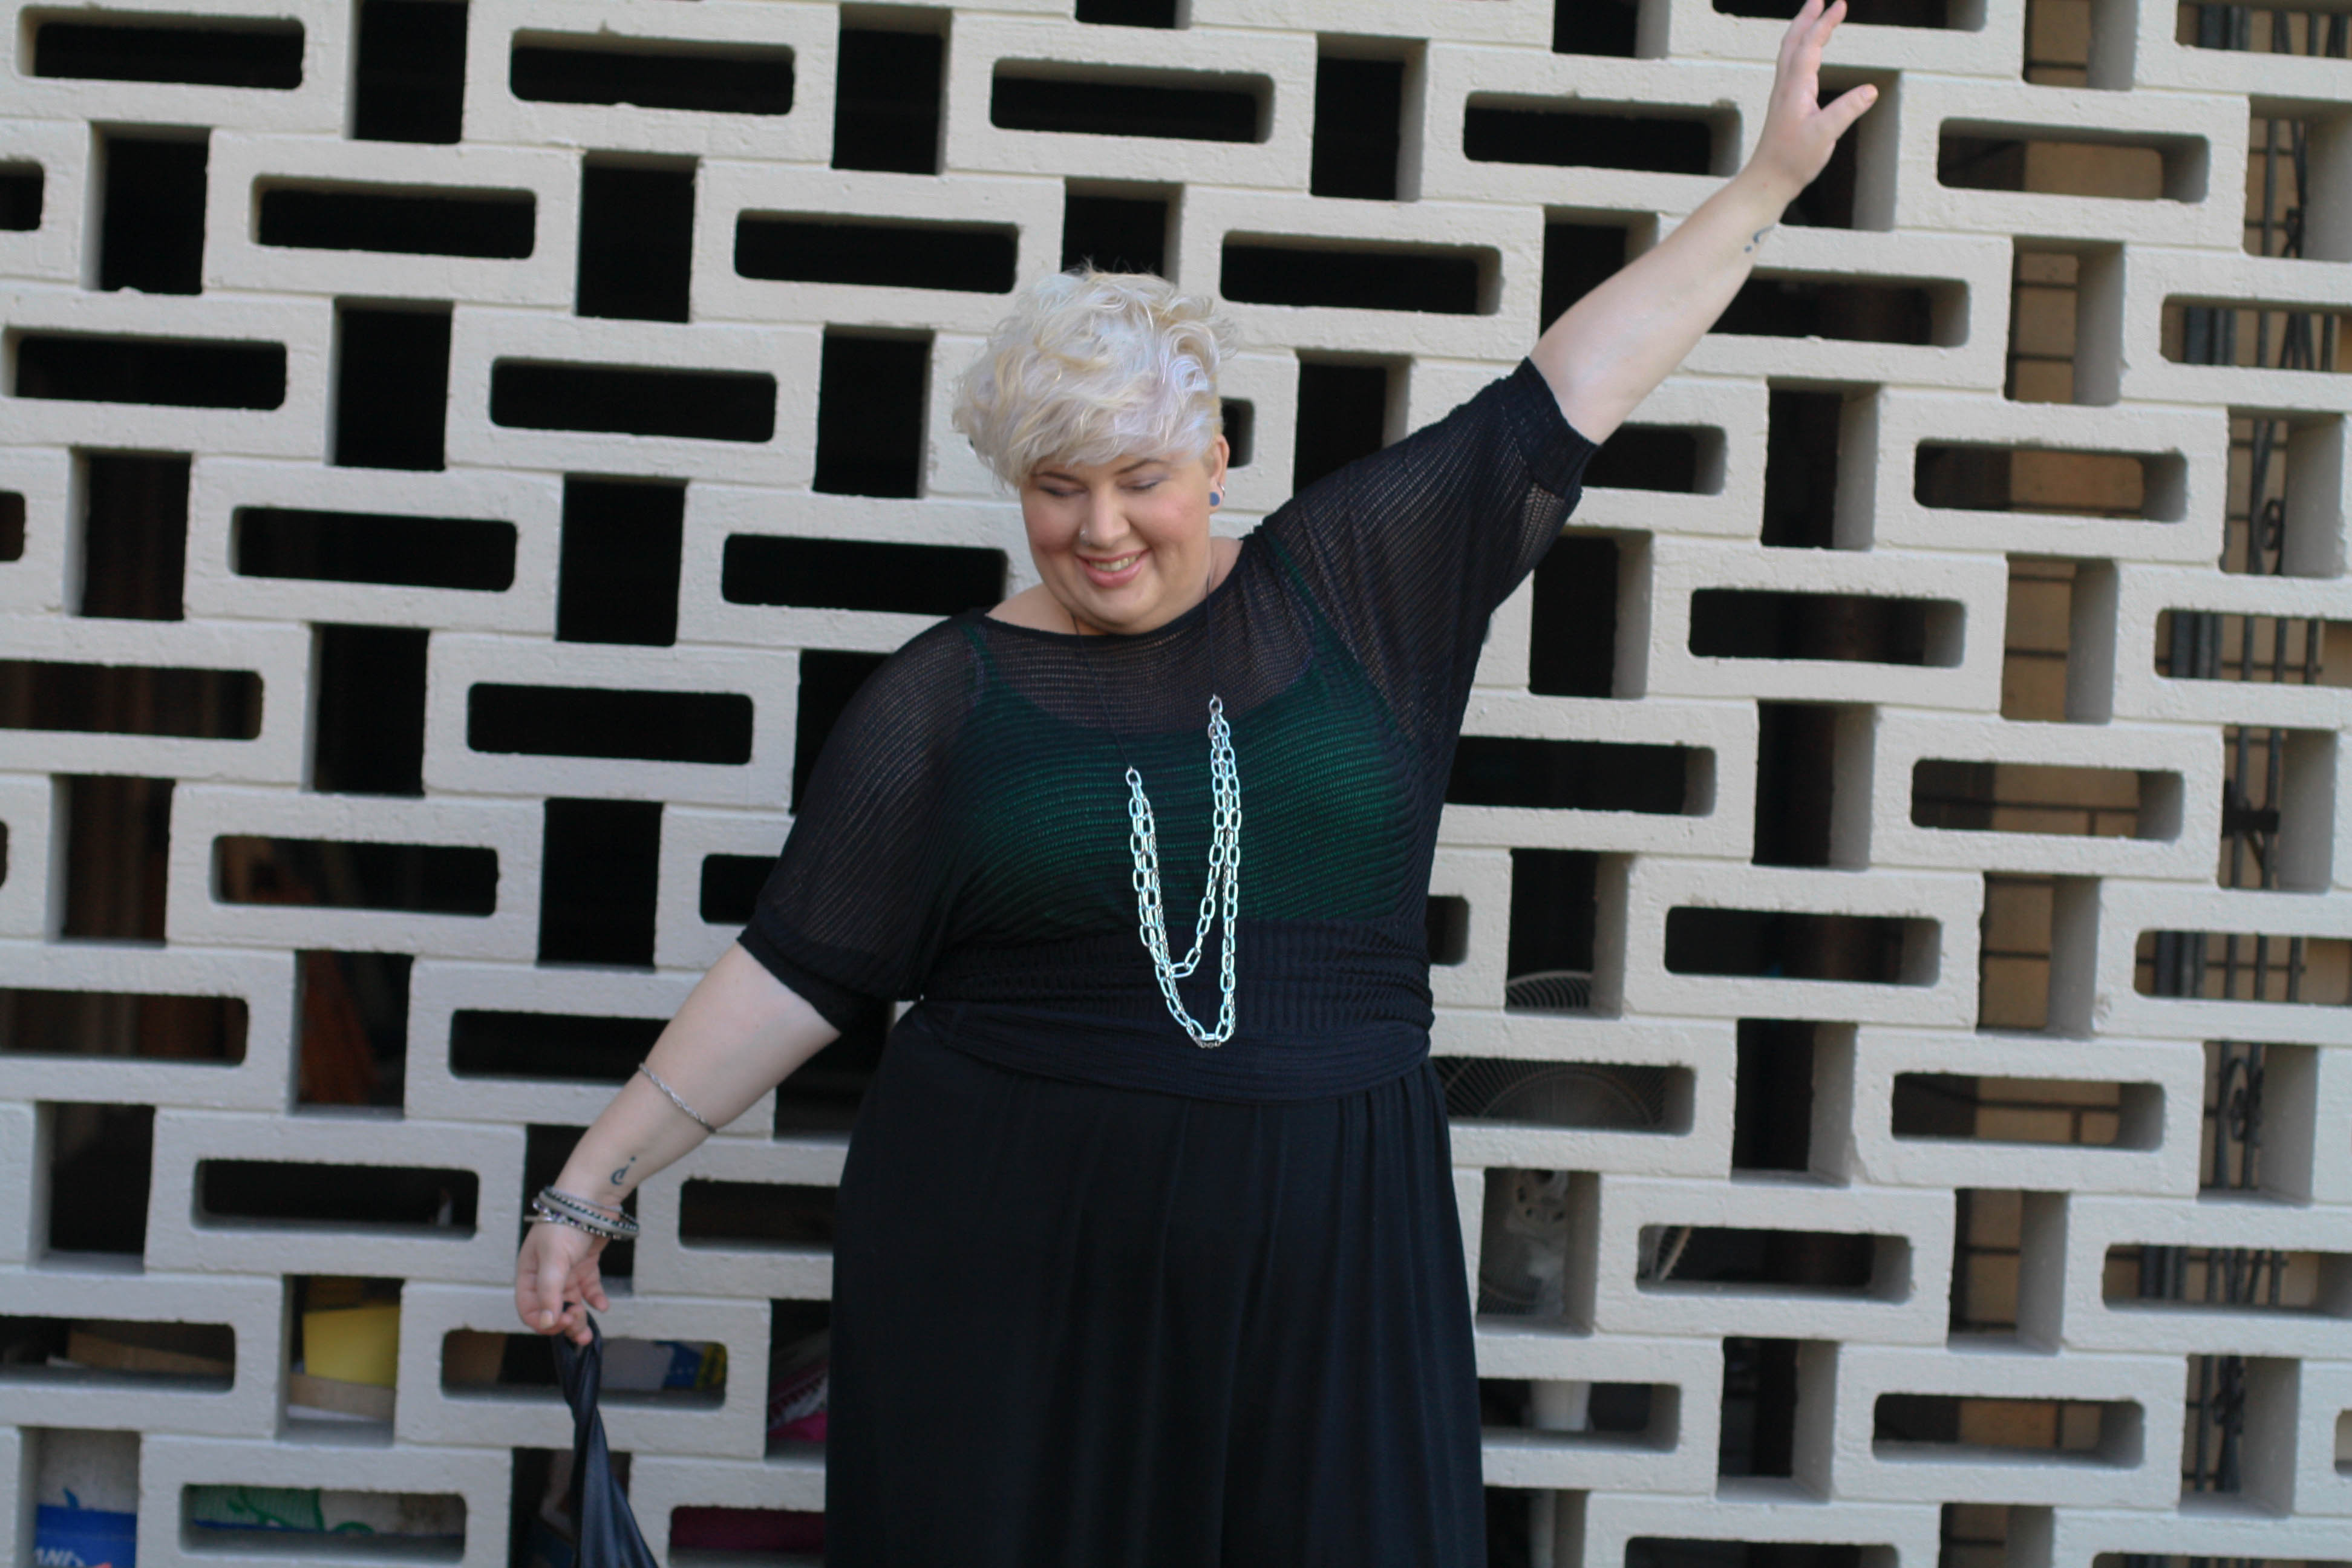 A photo of me, fat and pale skinned with short blonde hair, wearing a sheer black top with green singled under neath and large chain necklace. My arms are outstretched so you can see the baggy sleeve of the loose knit sheer top.